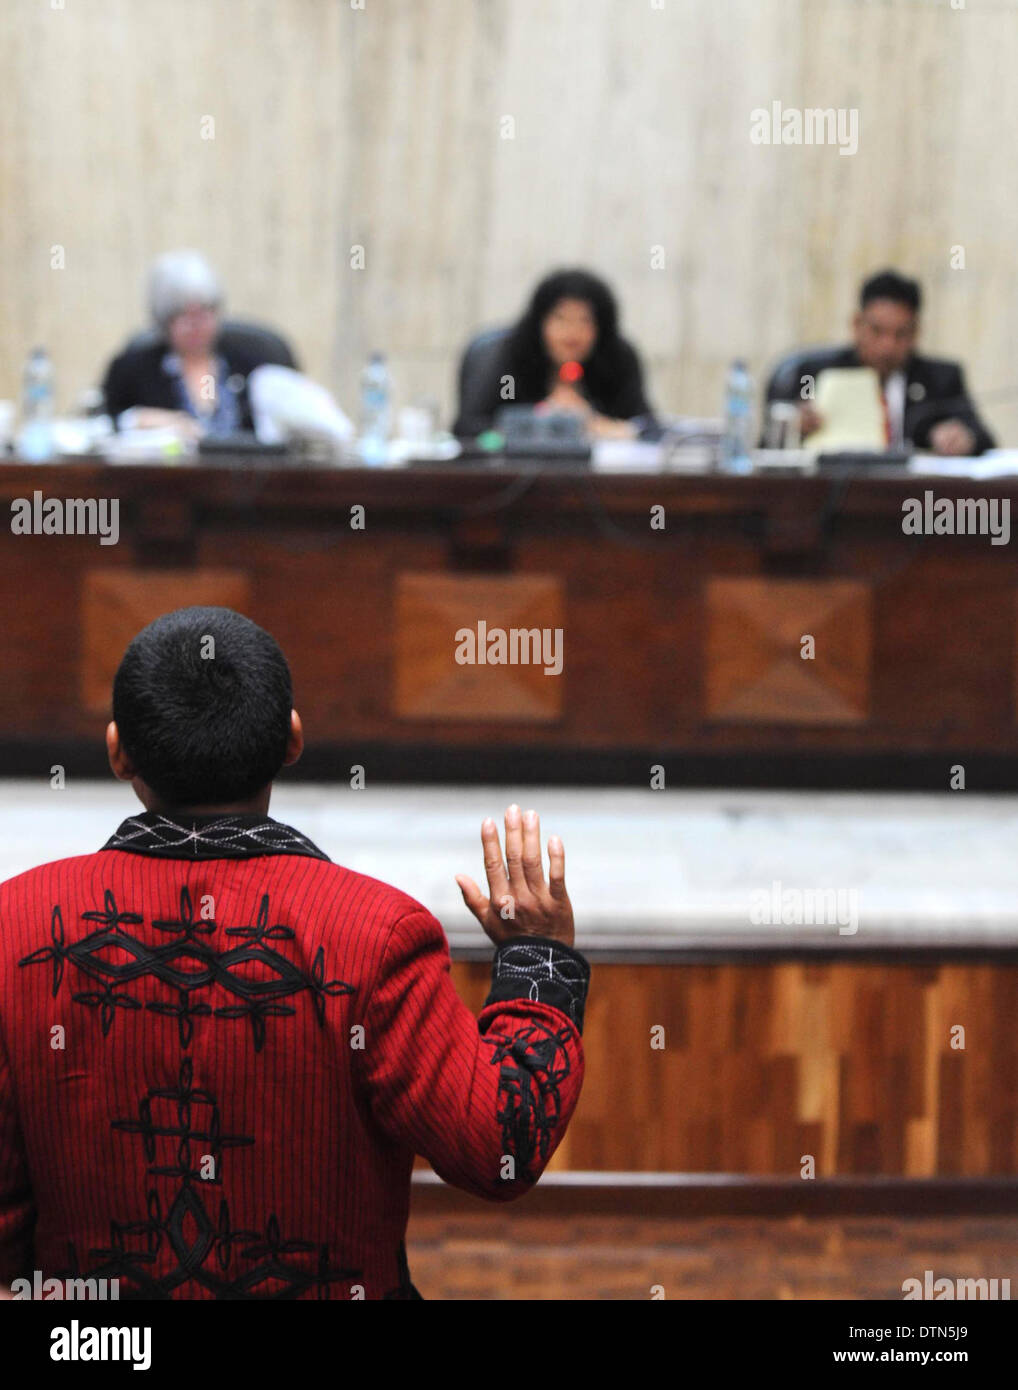 A Maya Ixil man swears during RIos Montt genocide trial In the Supreme Court of Justice Guatemala CIty March 19, 2013. - Stock Image